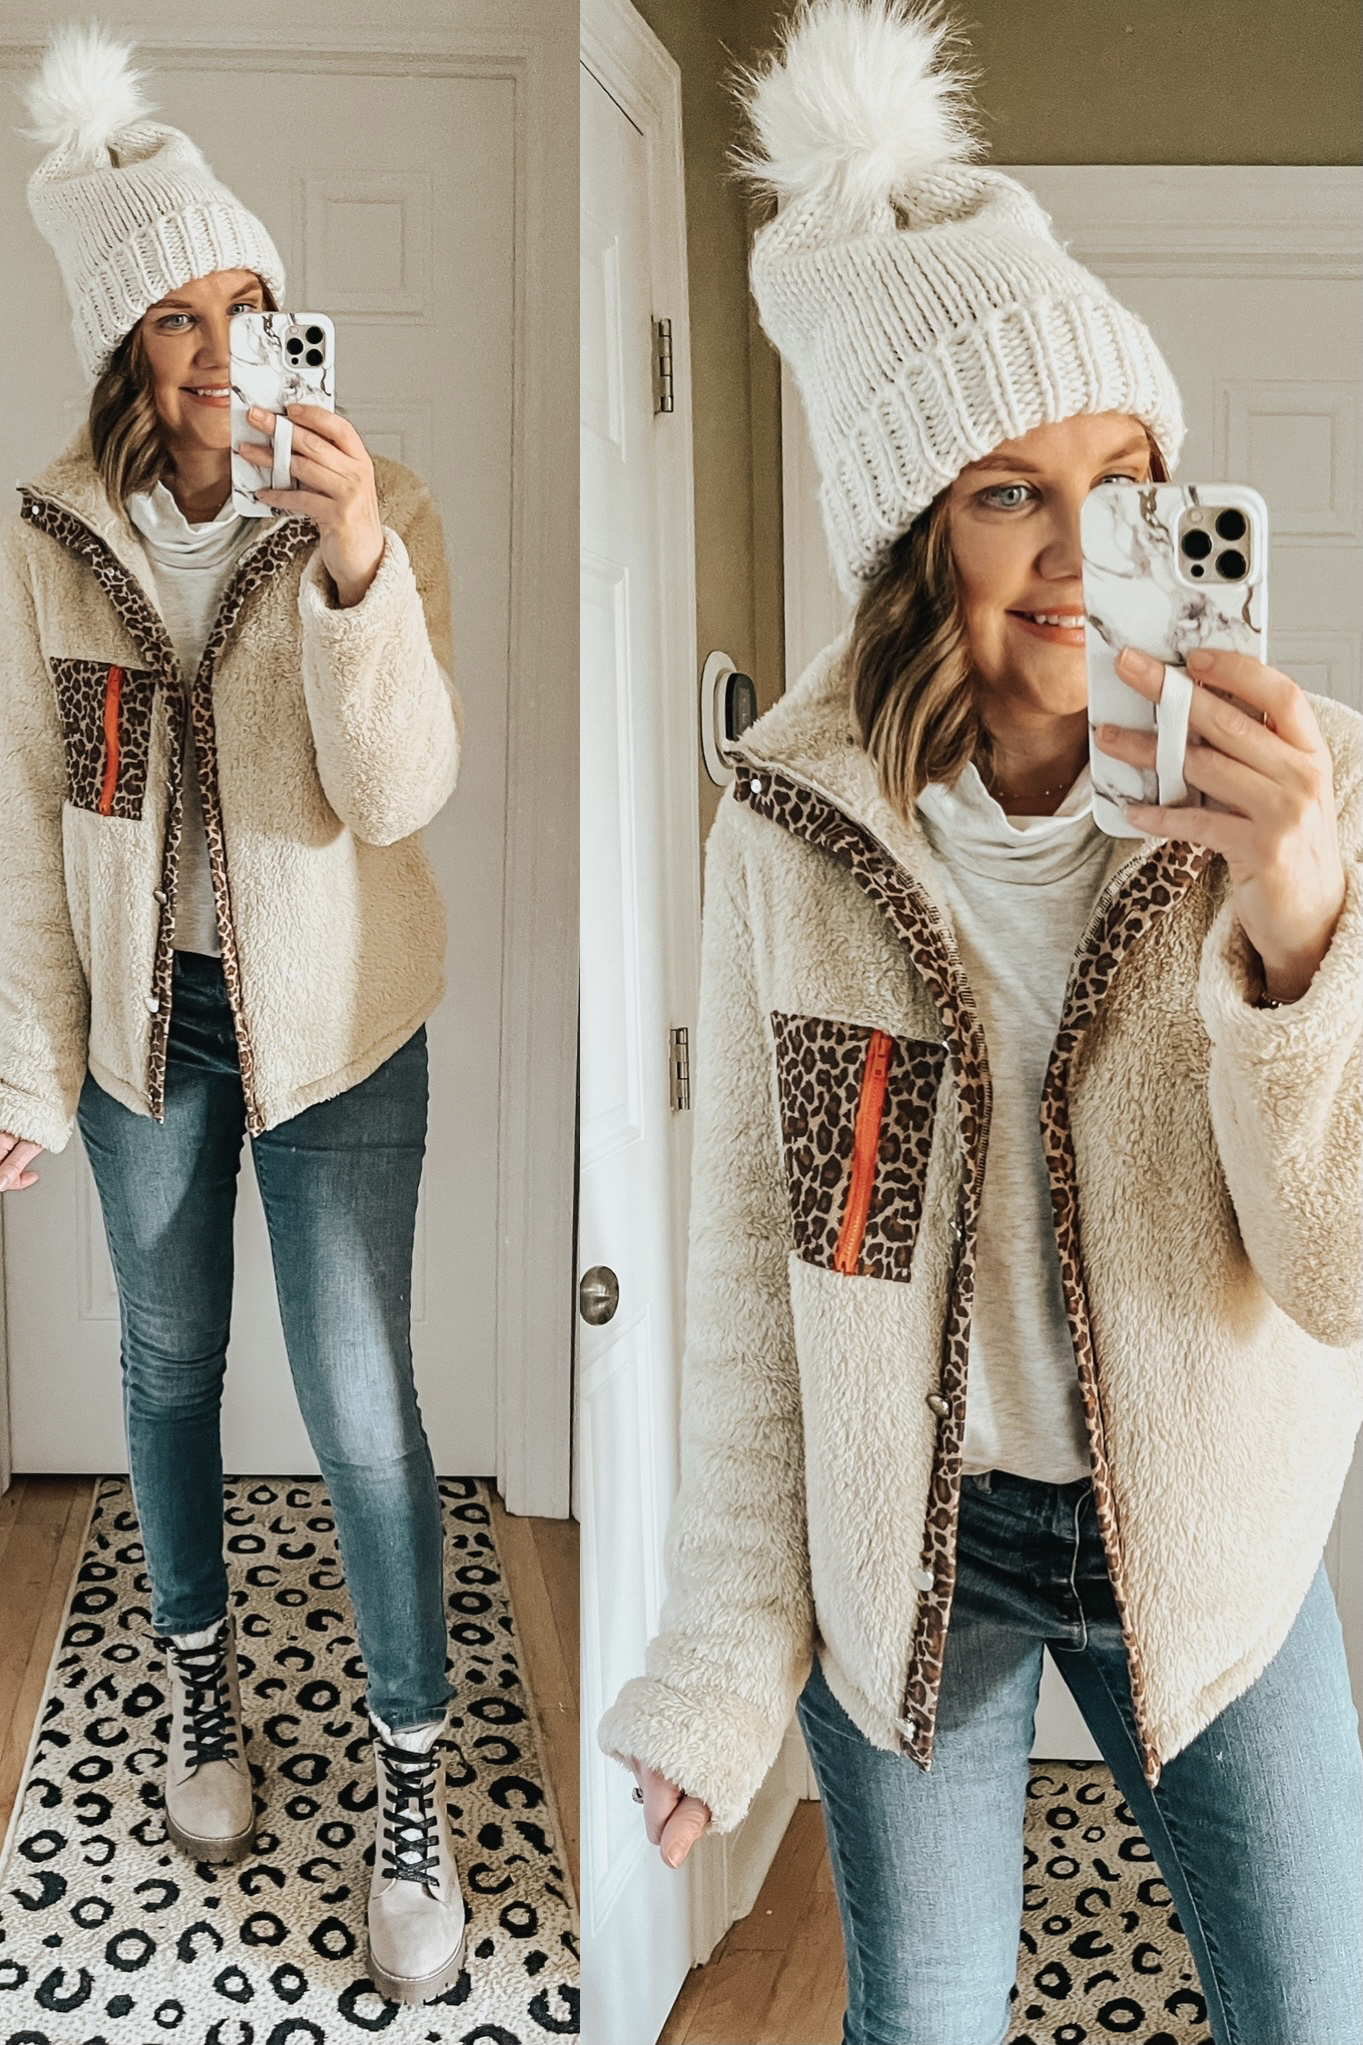 Cozy Winter Outfits from Amazon, sherpa jacket with leopard accents